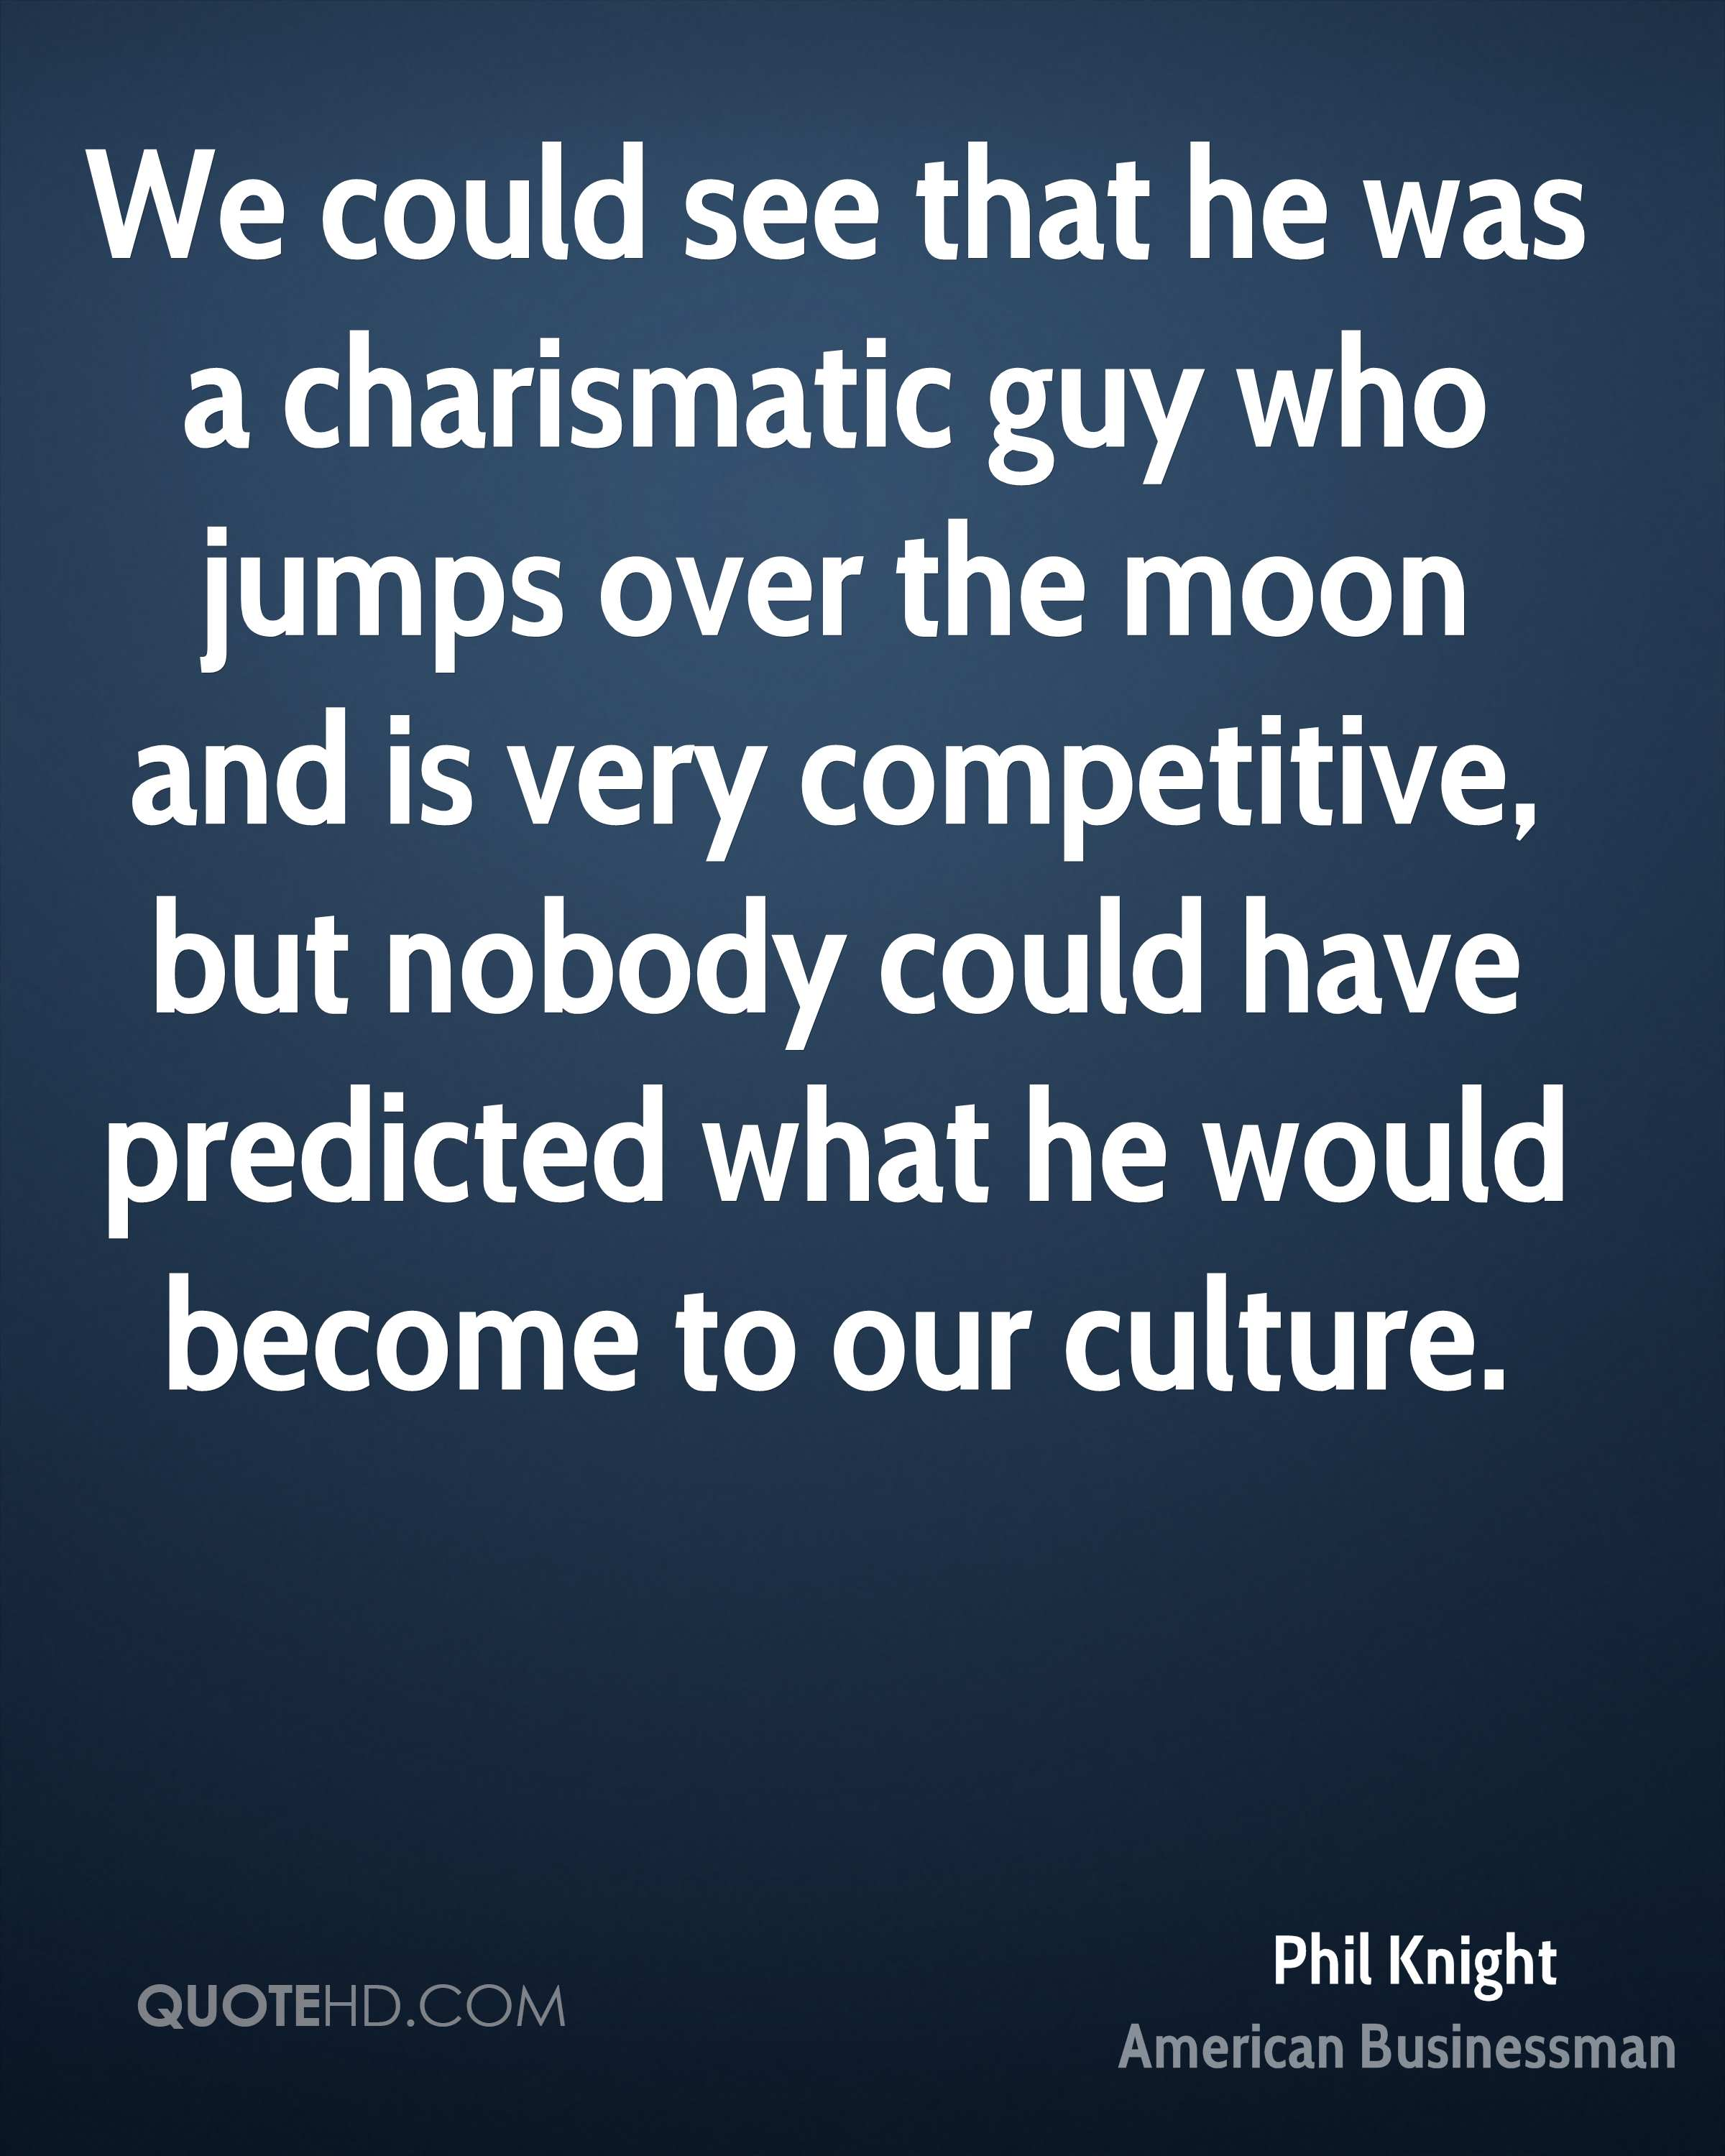 We could see that he was a charismatic guy who jumps over the moon and is very competitive, but nobody could have predicted what he would become to our culture.